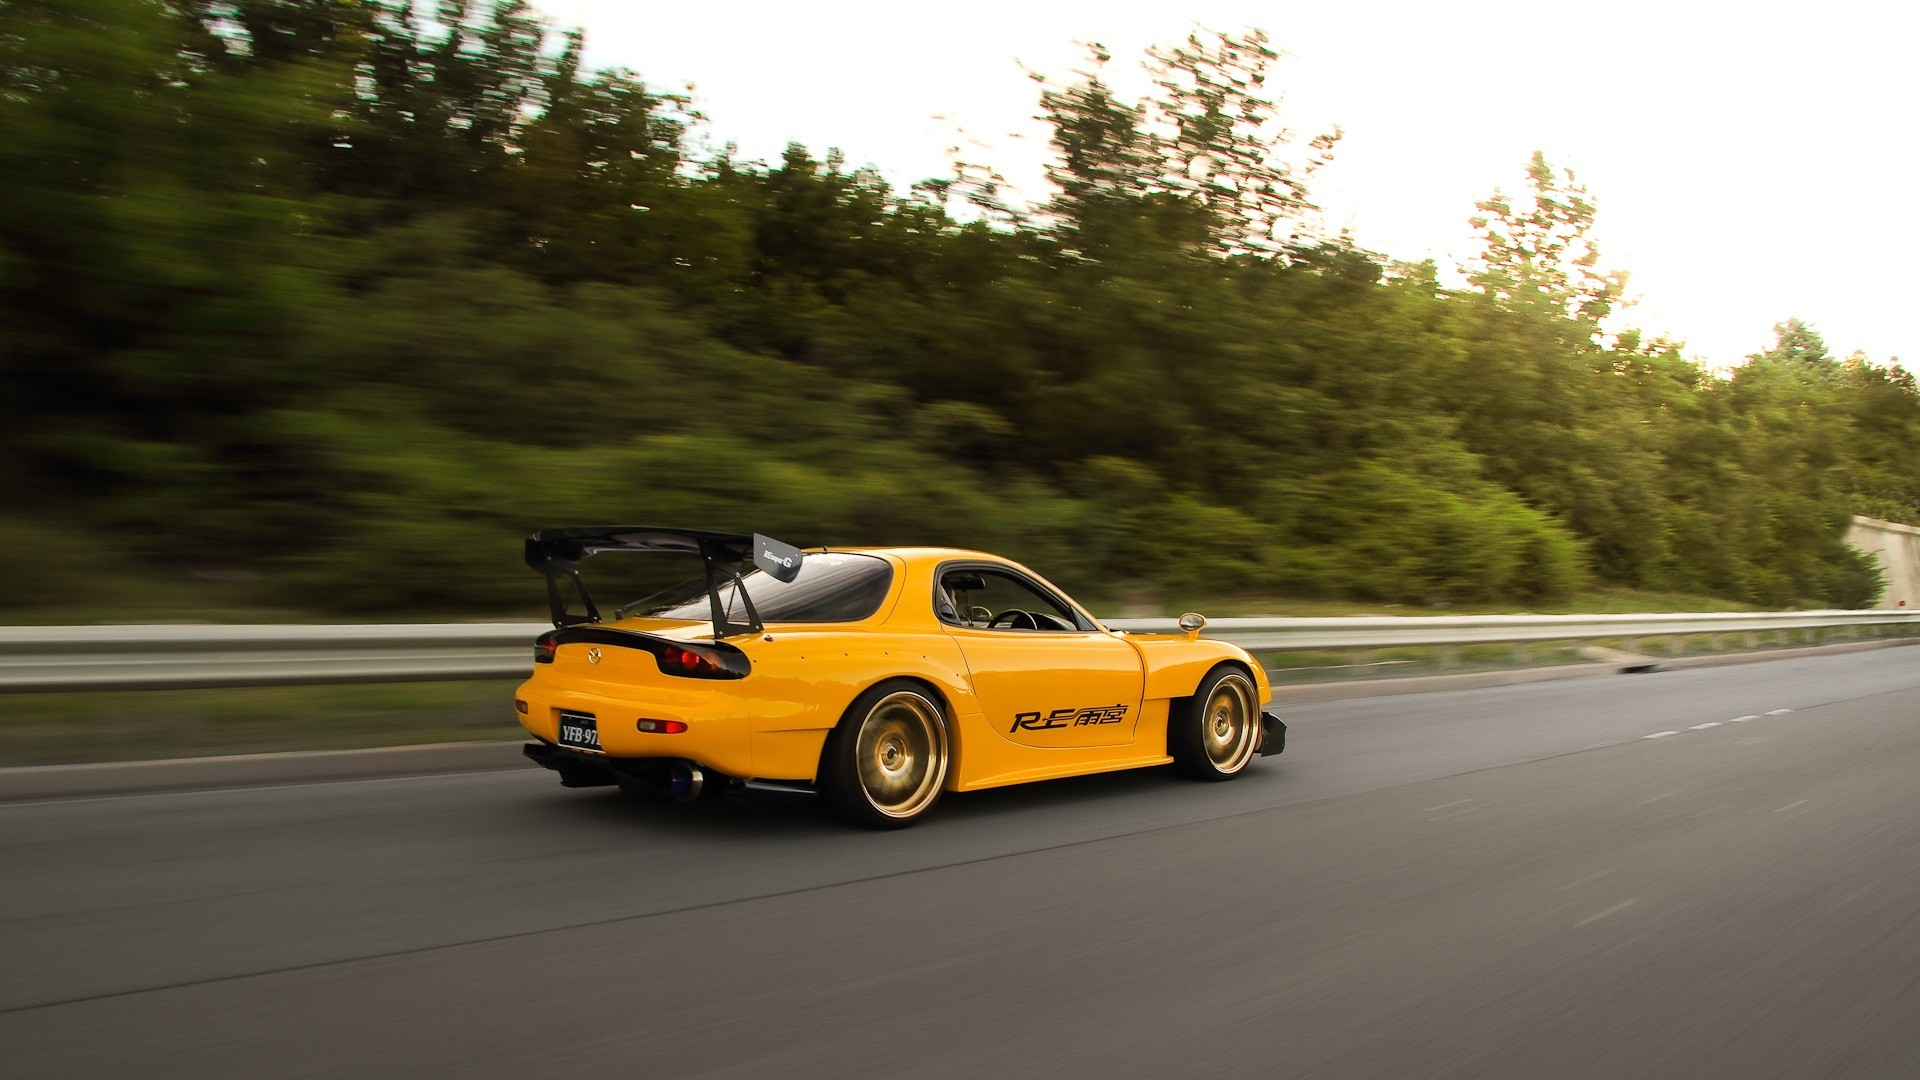 mazda rx7 wallpaper #24